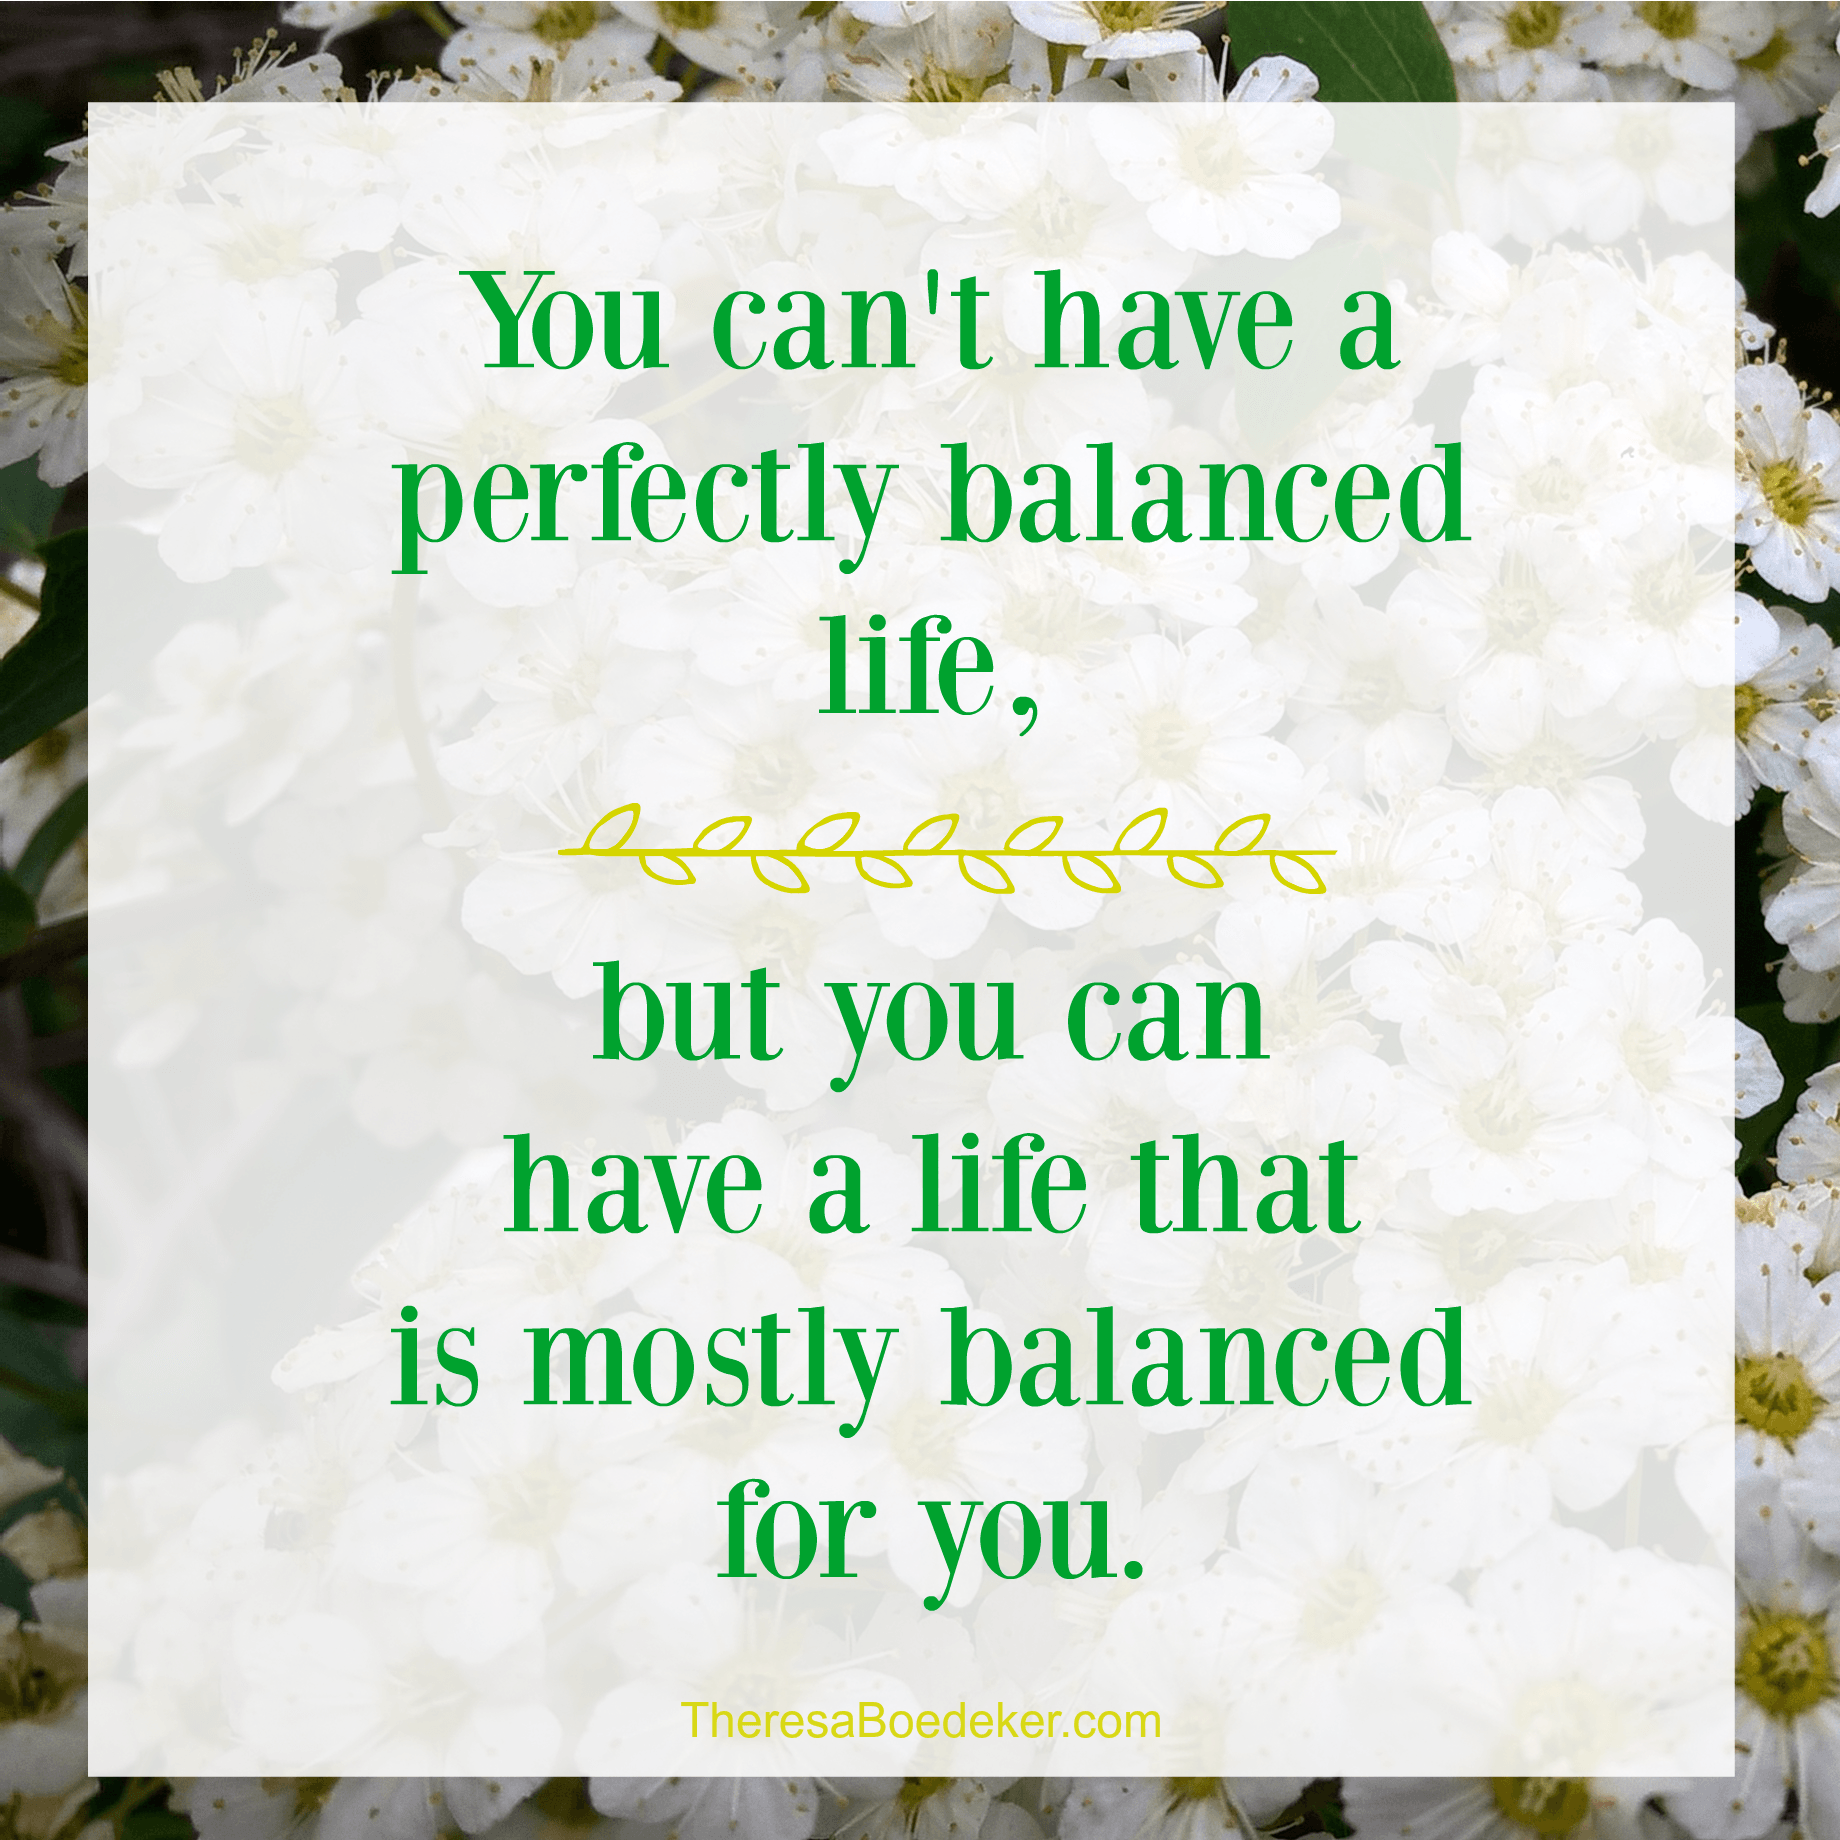 You can't have a perfectly balanced life, but you can have a life that is mostly balanced for you. Learn 5 tips to achieve your own mostly balanced life.